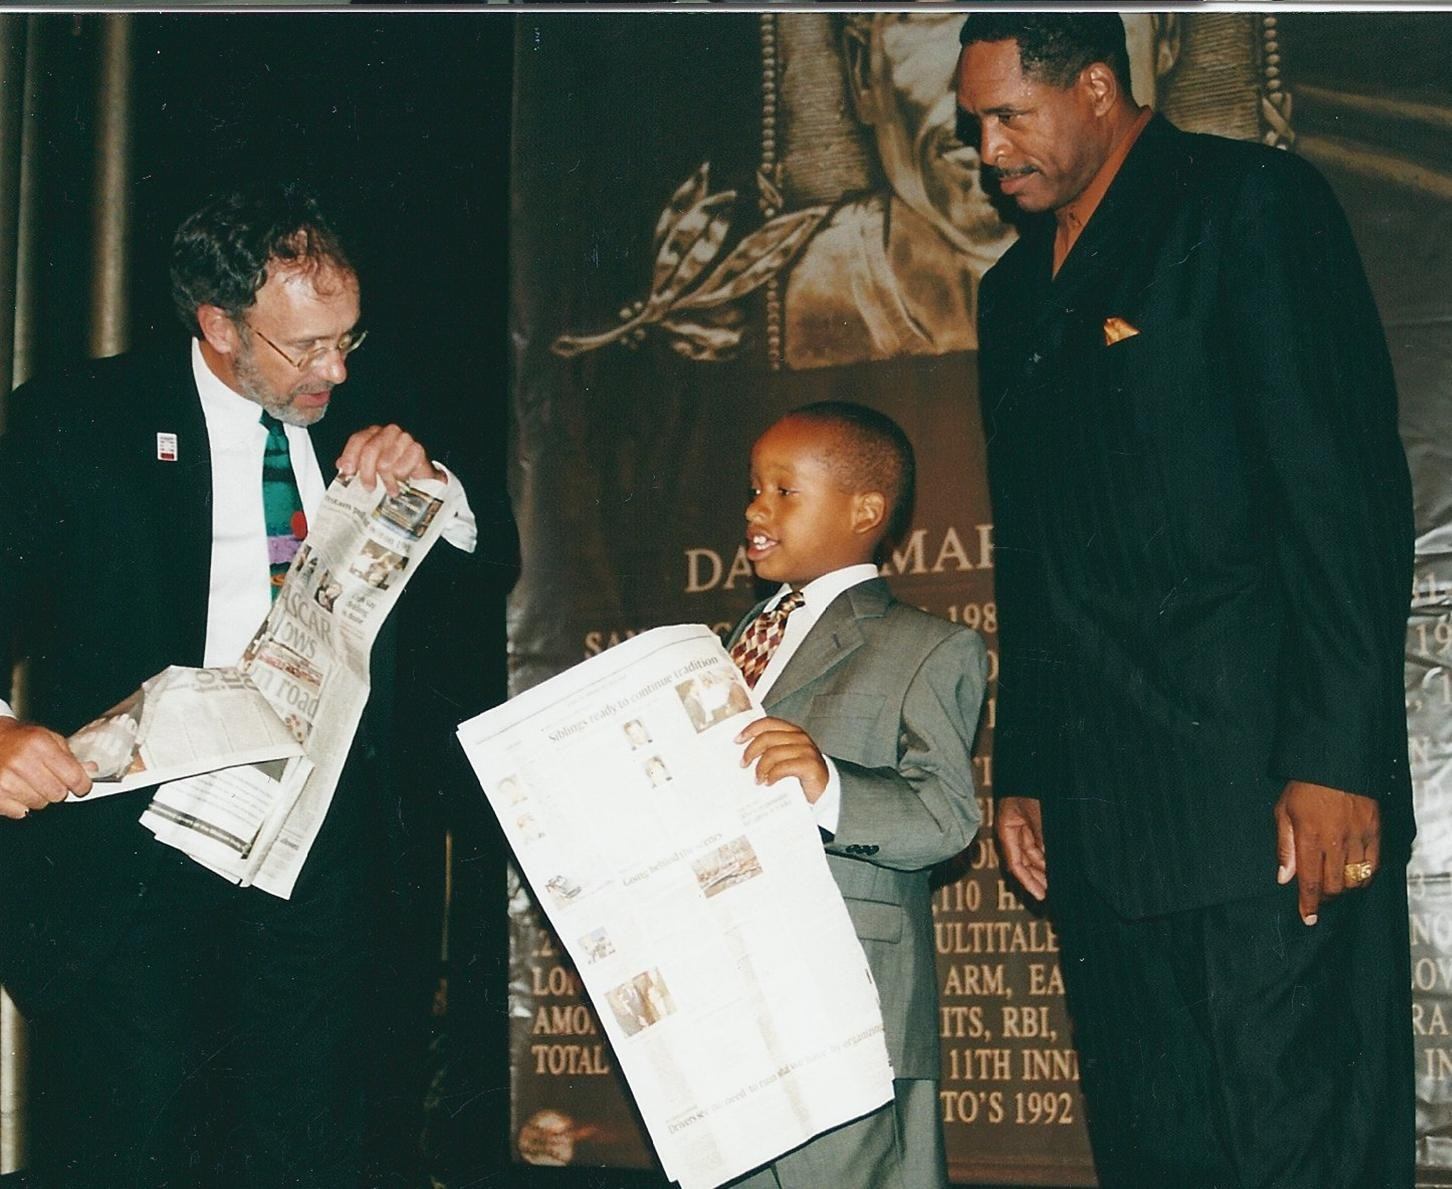 """Hondo's former Attucks-Brooks American Legion baseball teammate Dave Winfield and son at the Hall of Fame induction party in NYC, 2001. Little David Jr is now 6'9"""" and looks downward to see his dad. Now THAT'S magic!"""